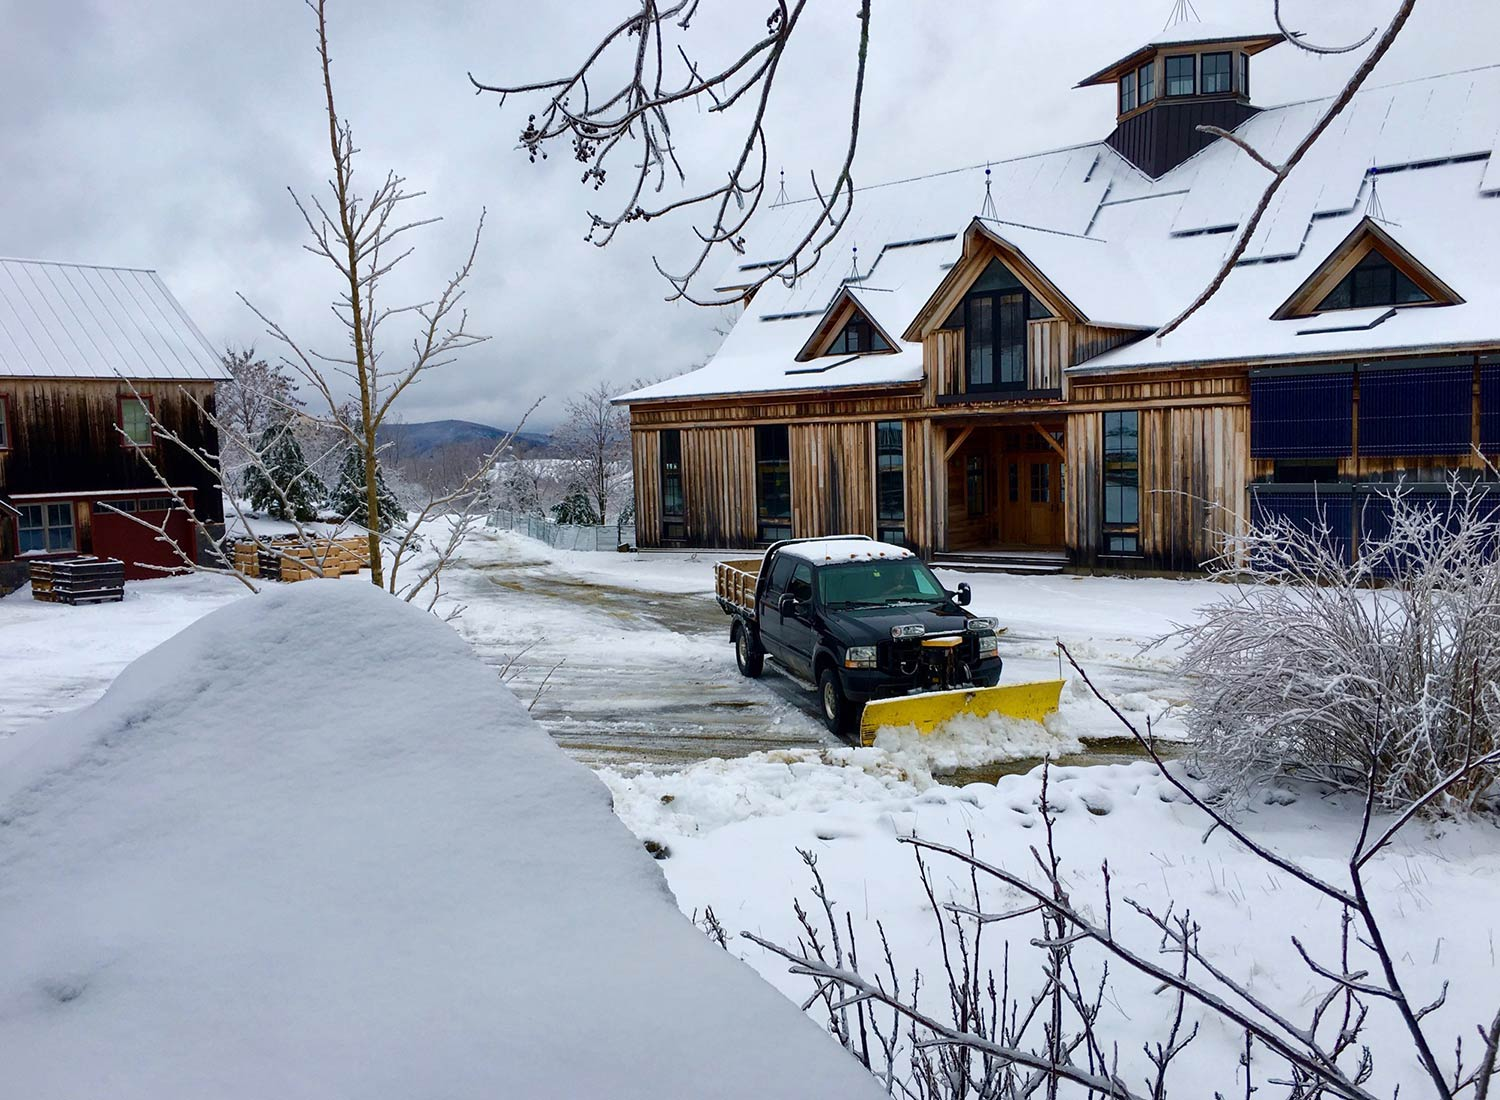 SHO Farm: vegan wild farming in a cold climate | we are women-owned & stewarded - shawn plows our 1 mile long driveway and the entire farmstead